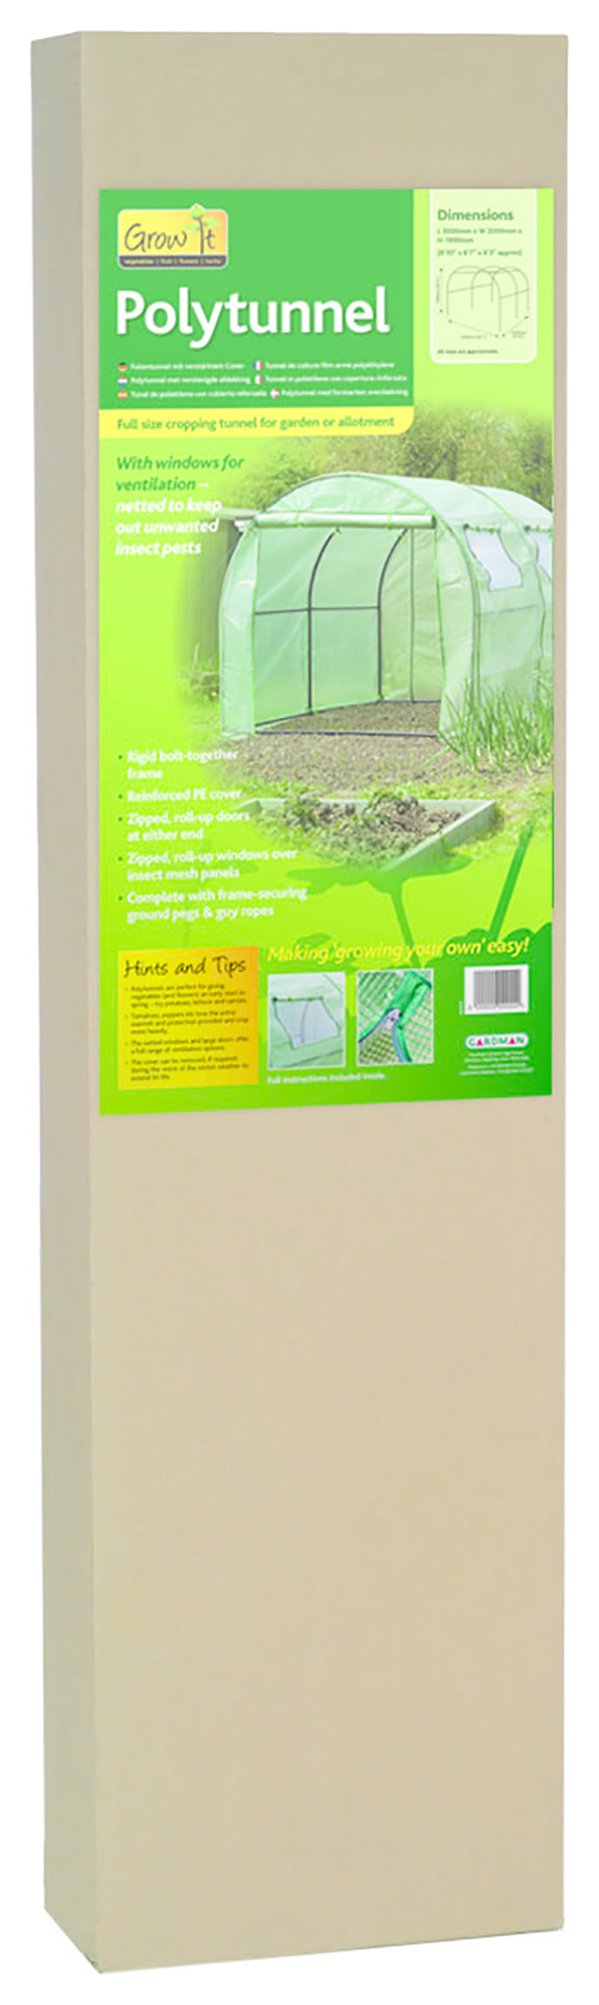 Gardman - Polytunnel with Reinforced Cover